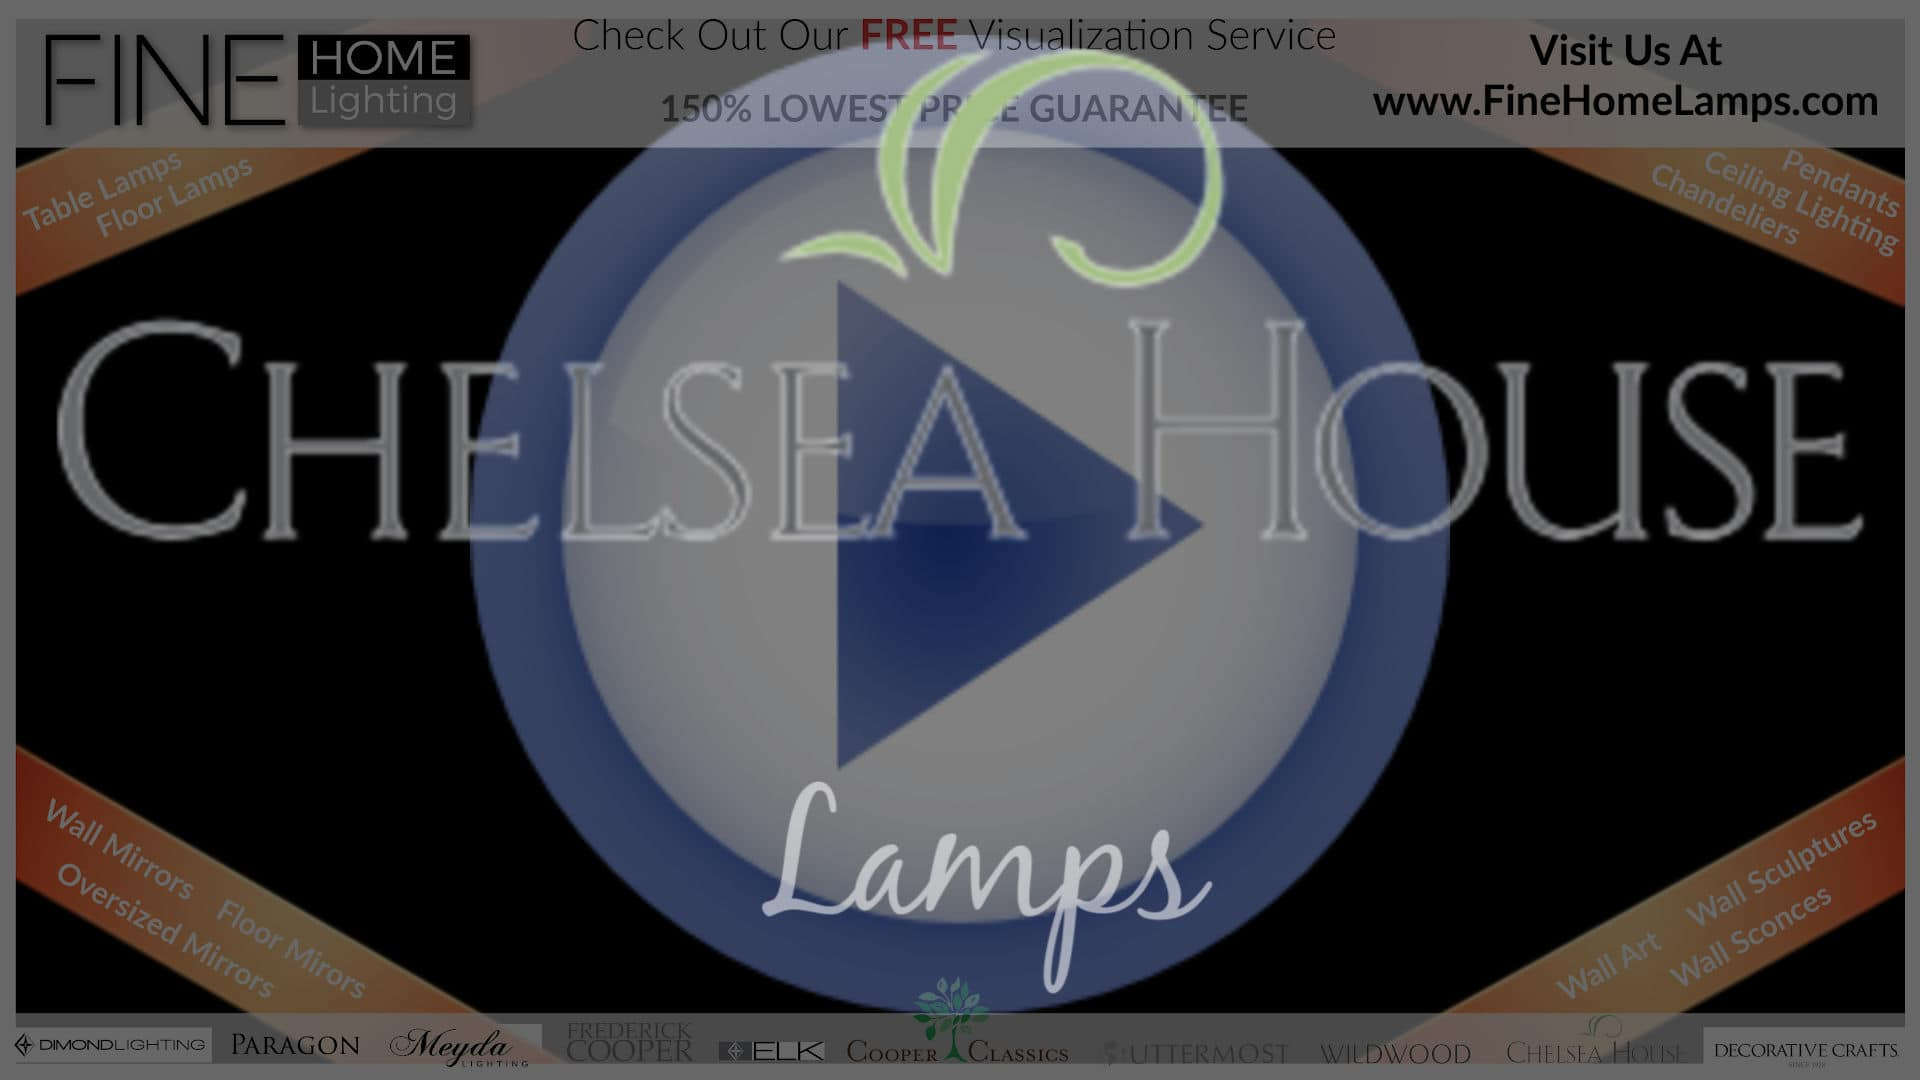 Chelsea-House-Lamps-Thanks-for-watching-this-video-Get-an-additional-15-percent-off-your-next-purchase-Use-Coupon-Code-VIDEO-1